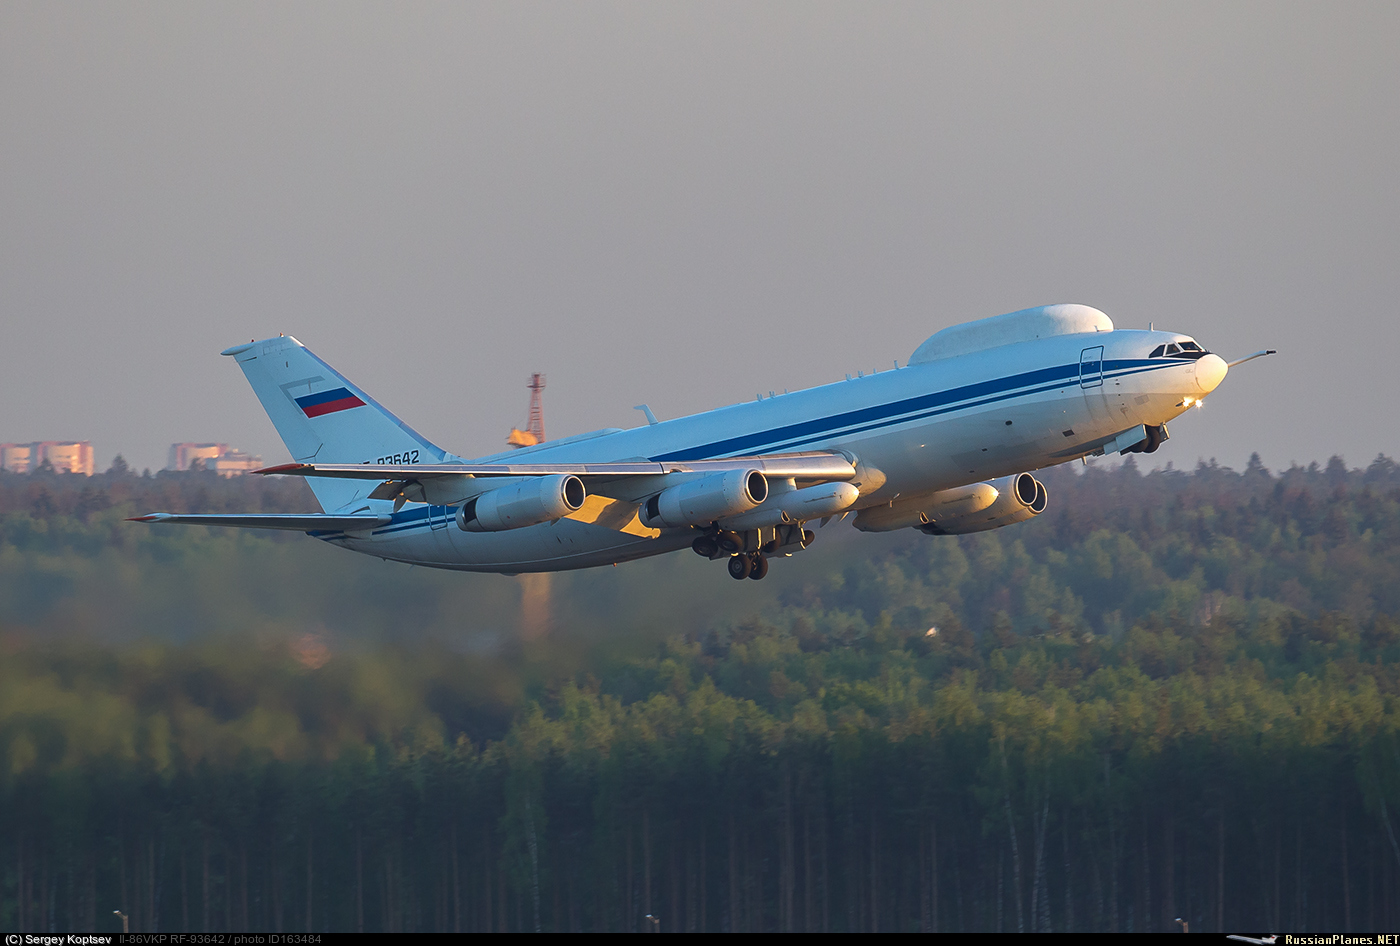 http://russianplanes.net/images/to164000/163484.jpg